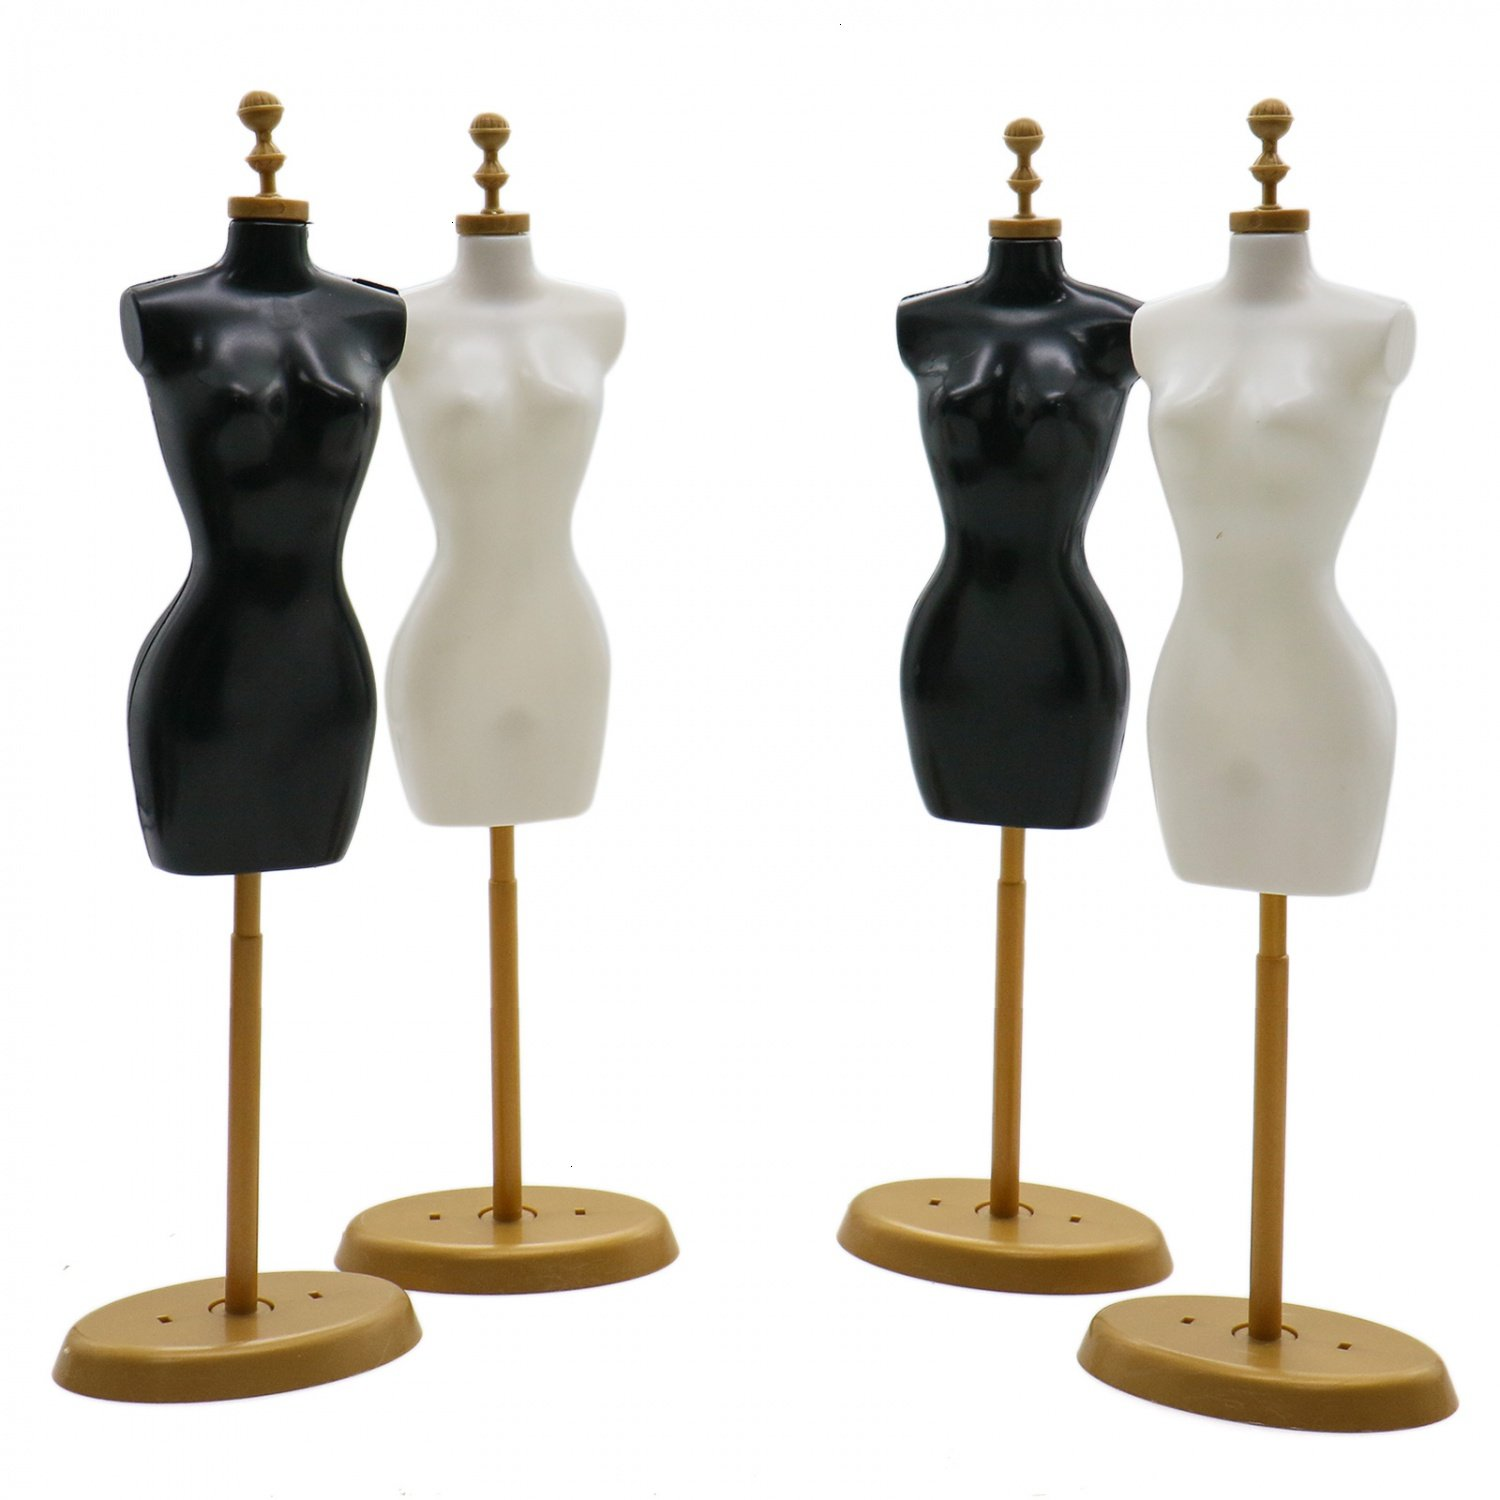 Clothes Dress Gown  Mannequin Model Stand Holder Display for  Doll JKP